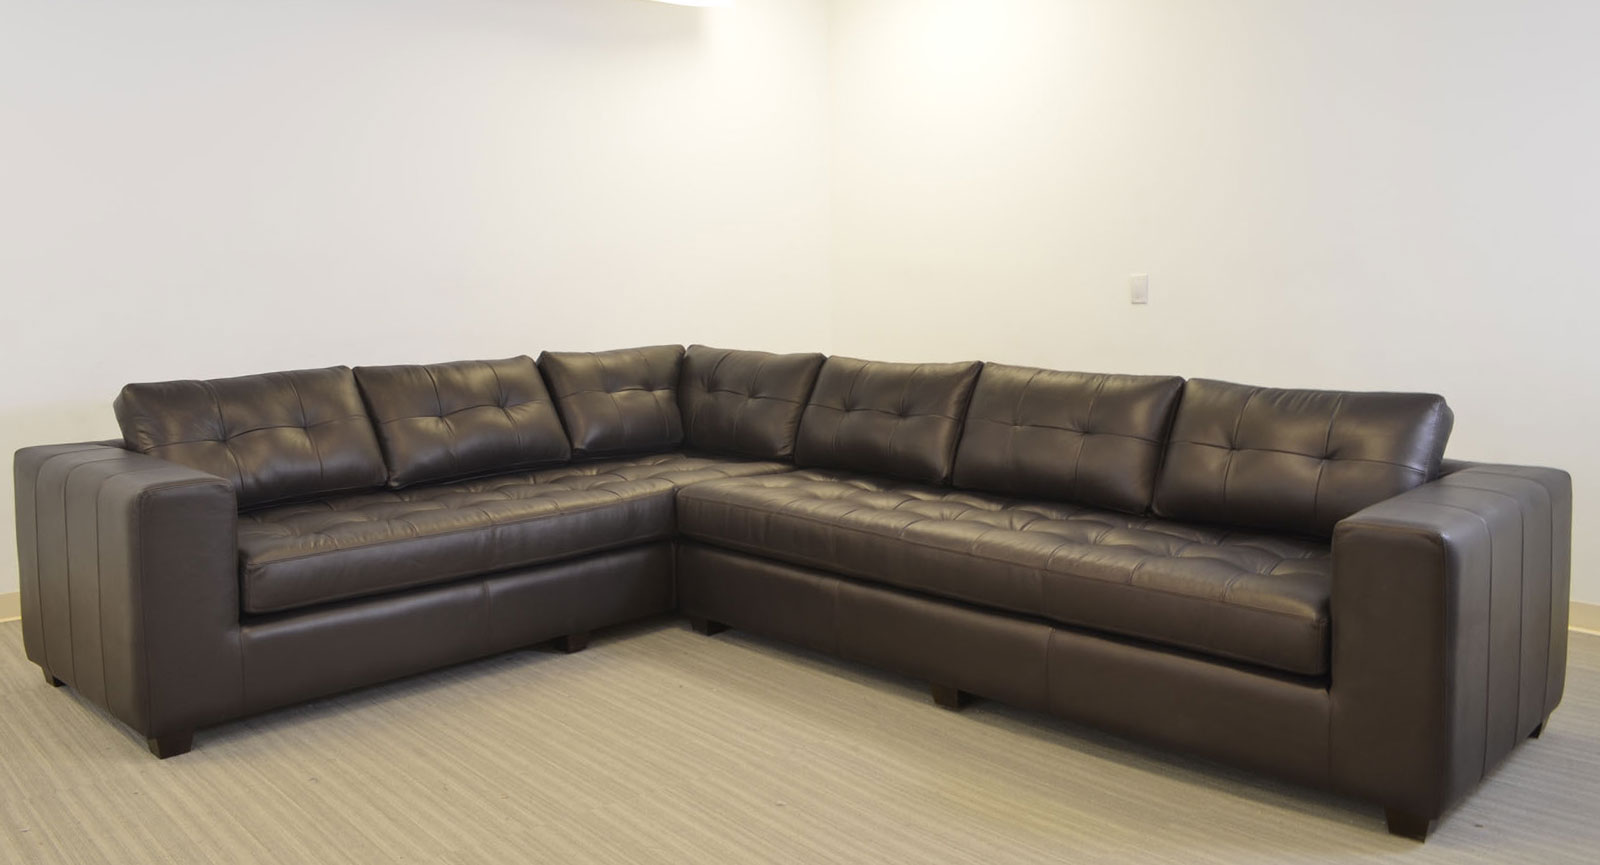 Gev Right Arm Corner Sofa Left Arm Sofa